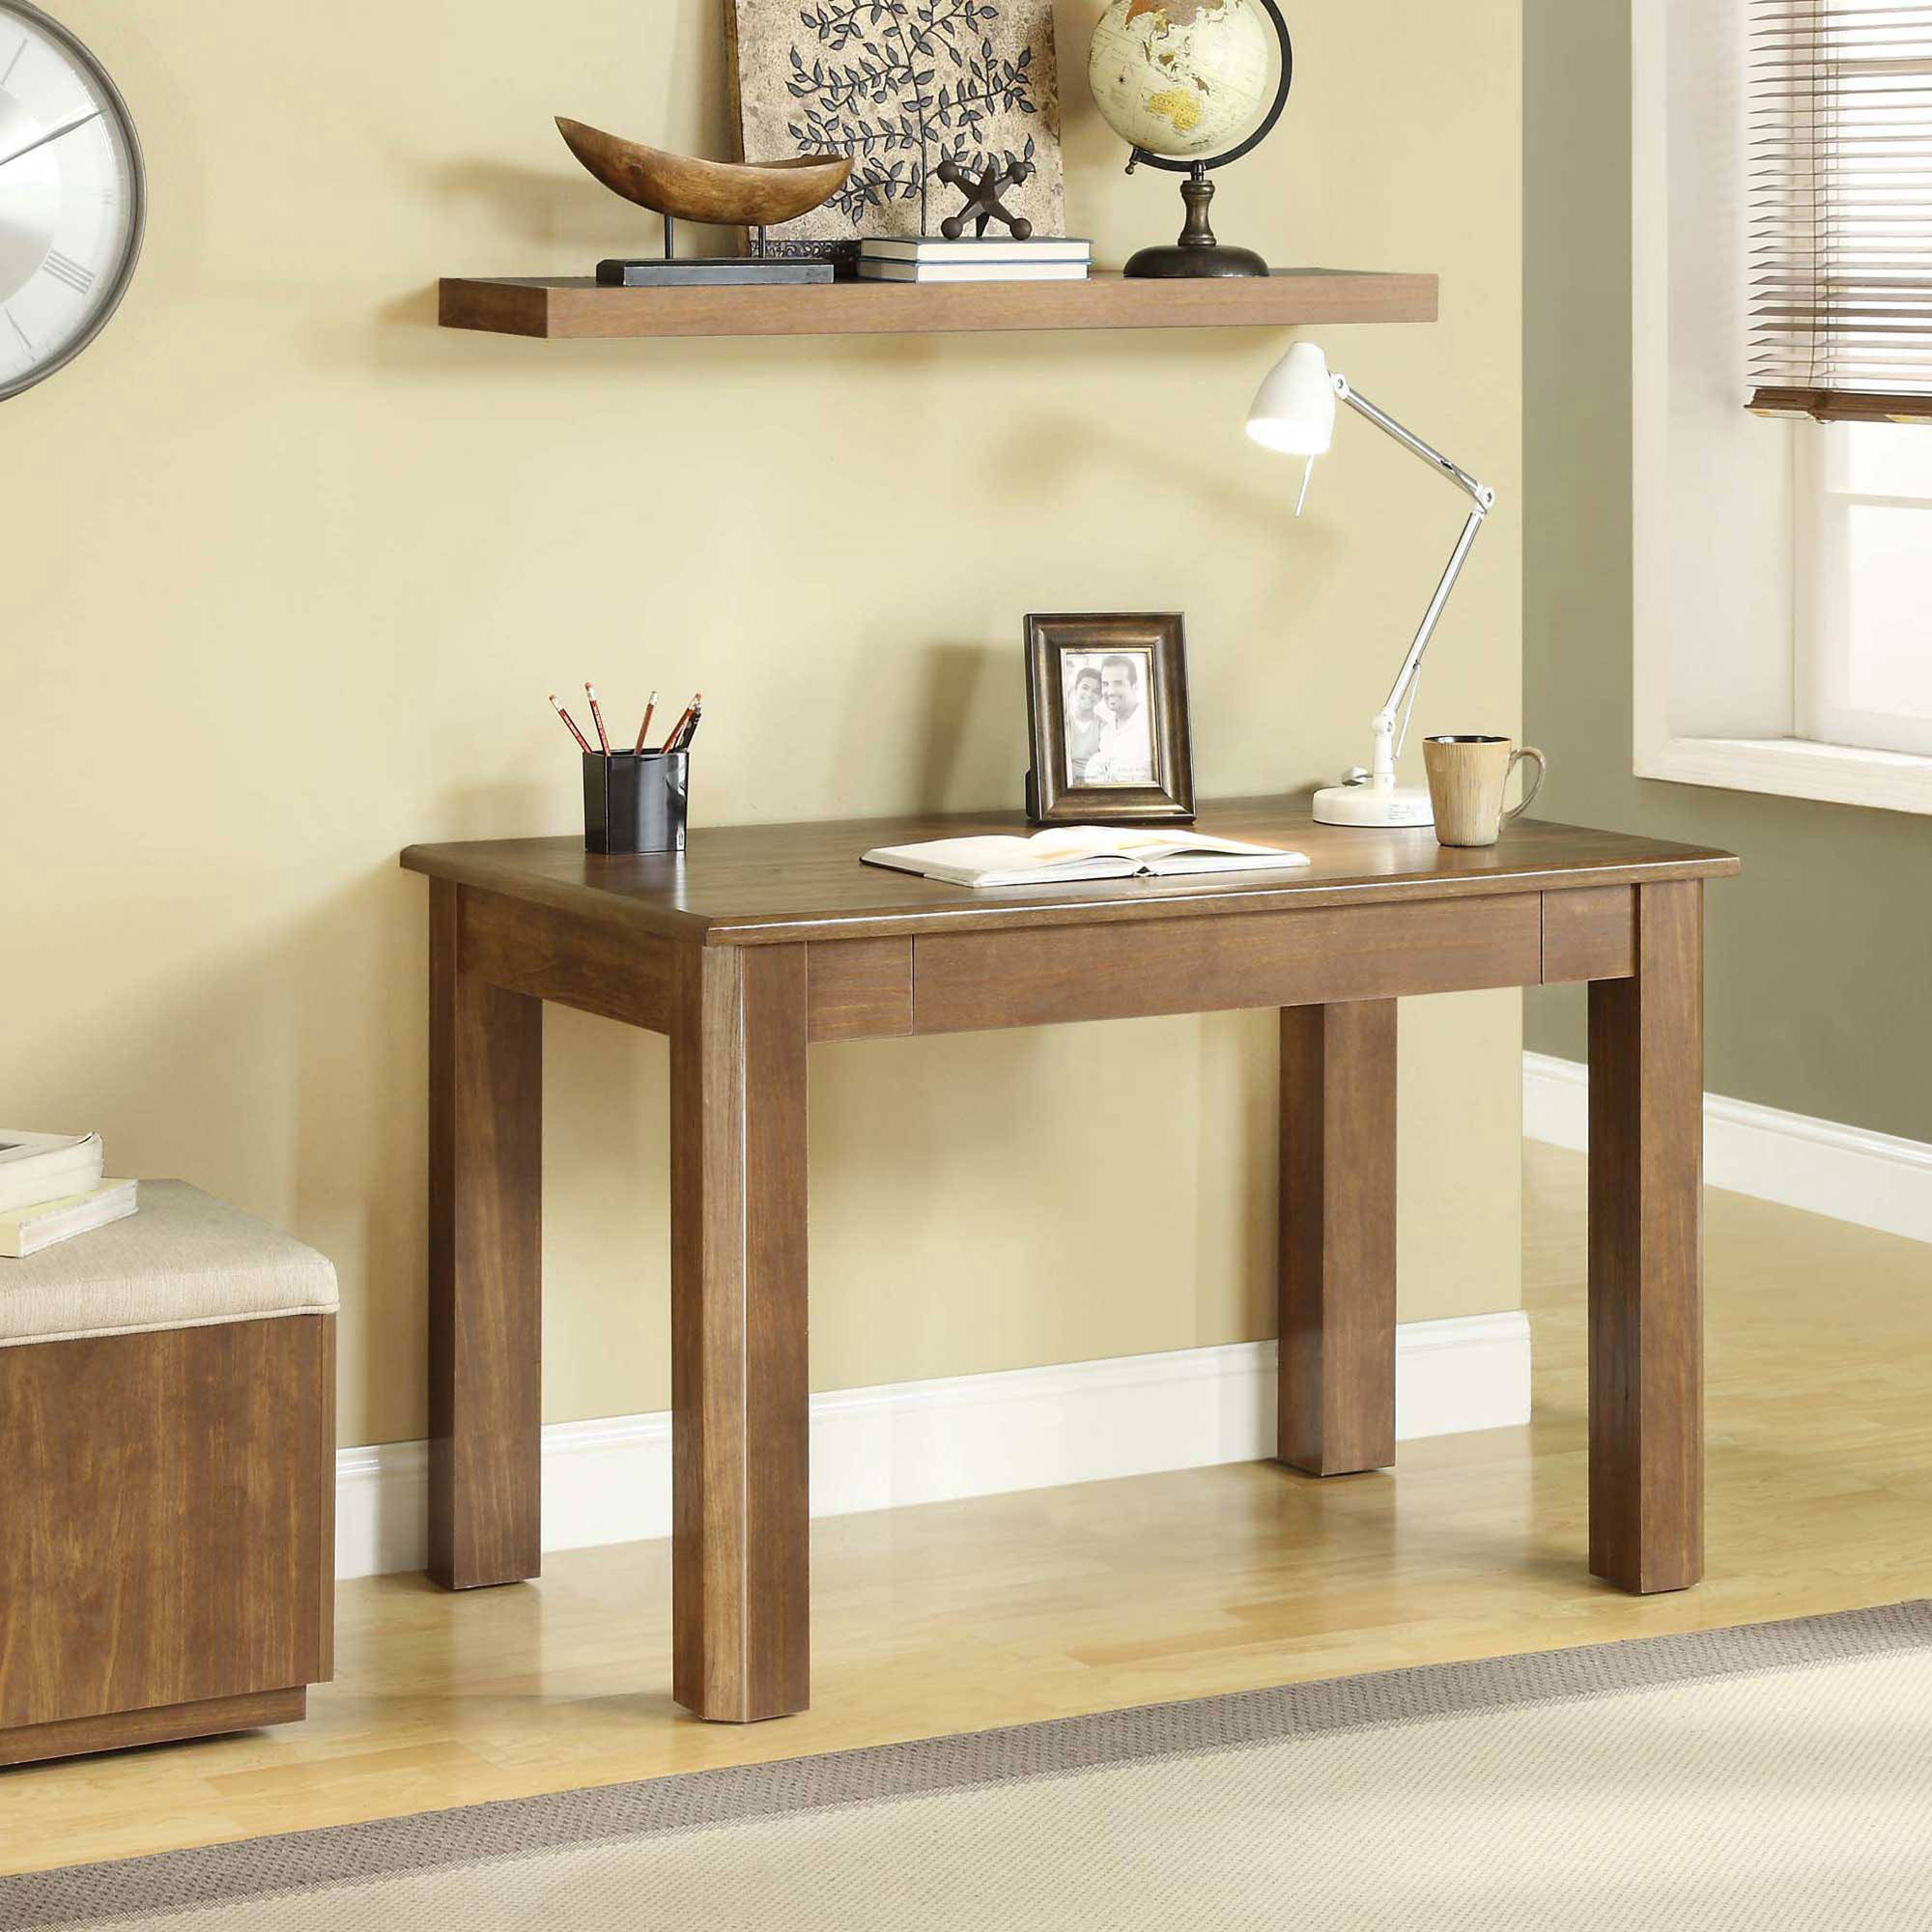 Renai Home/Office Desk, Dark Walnut